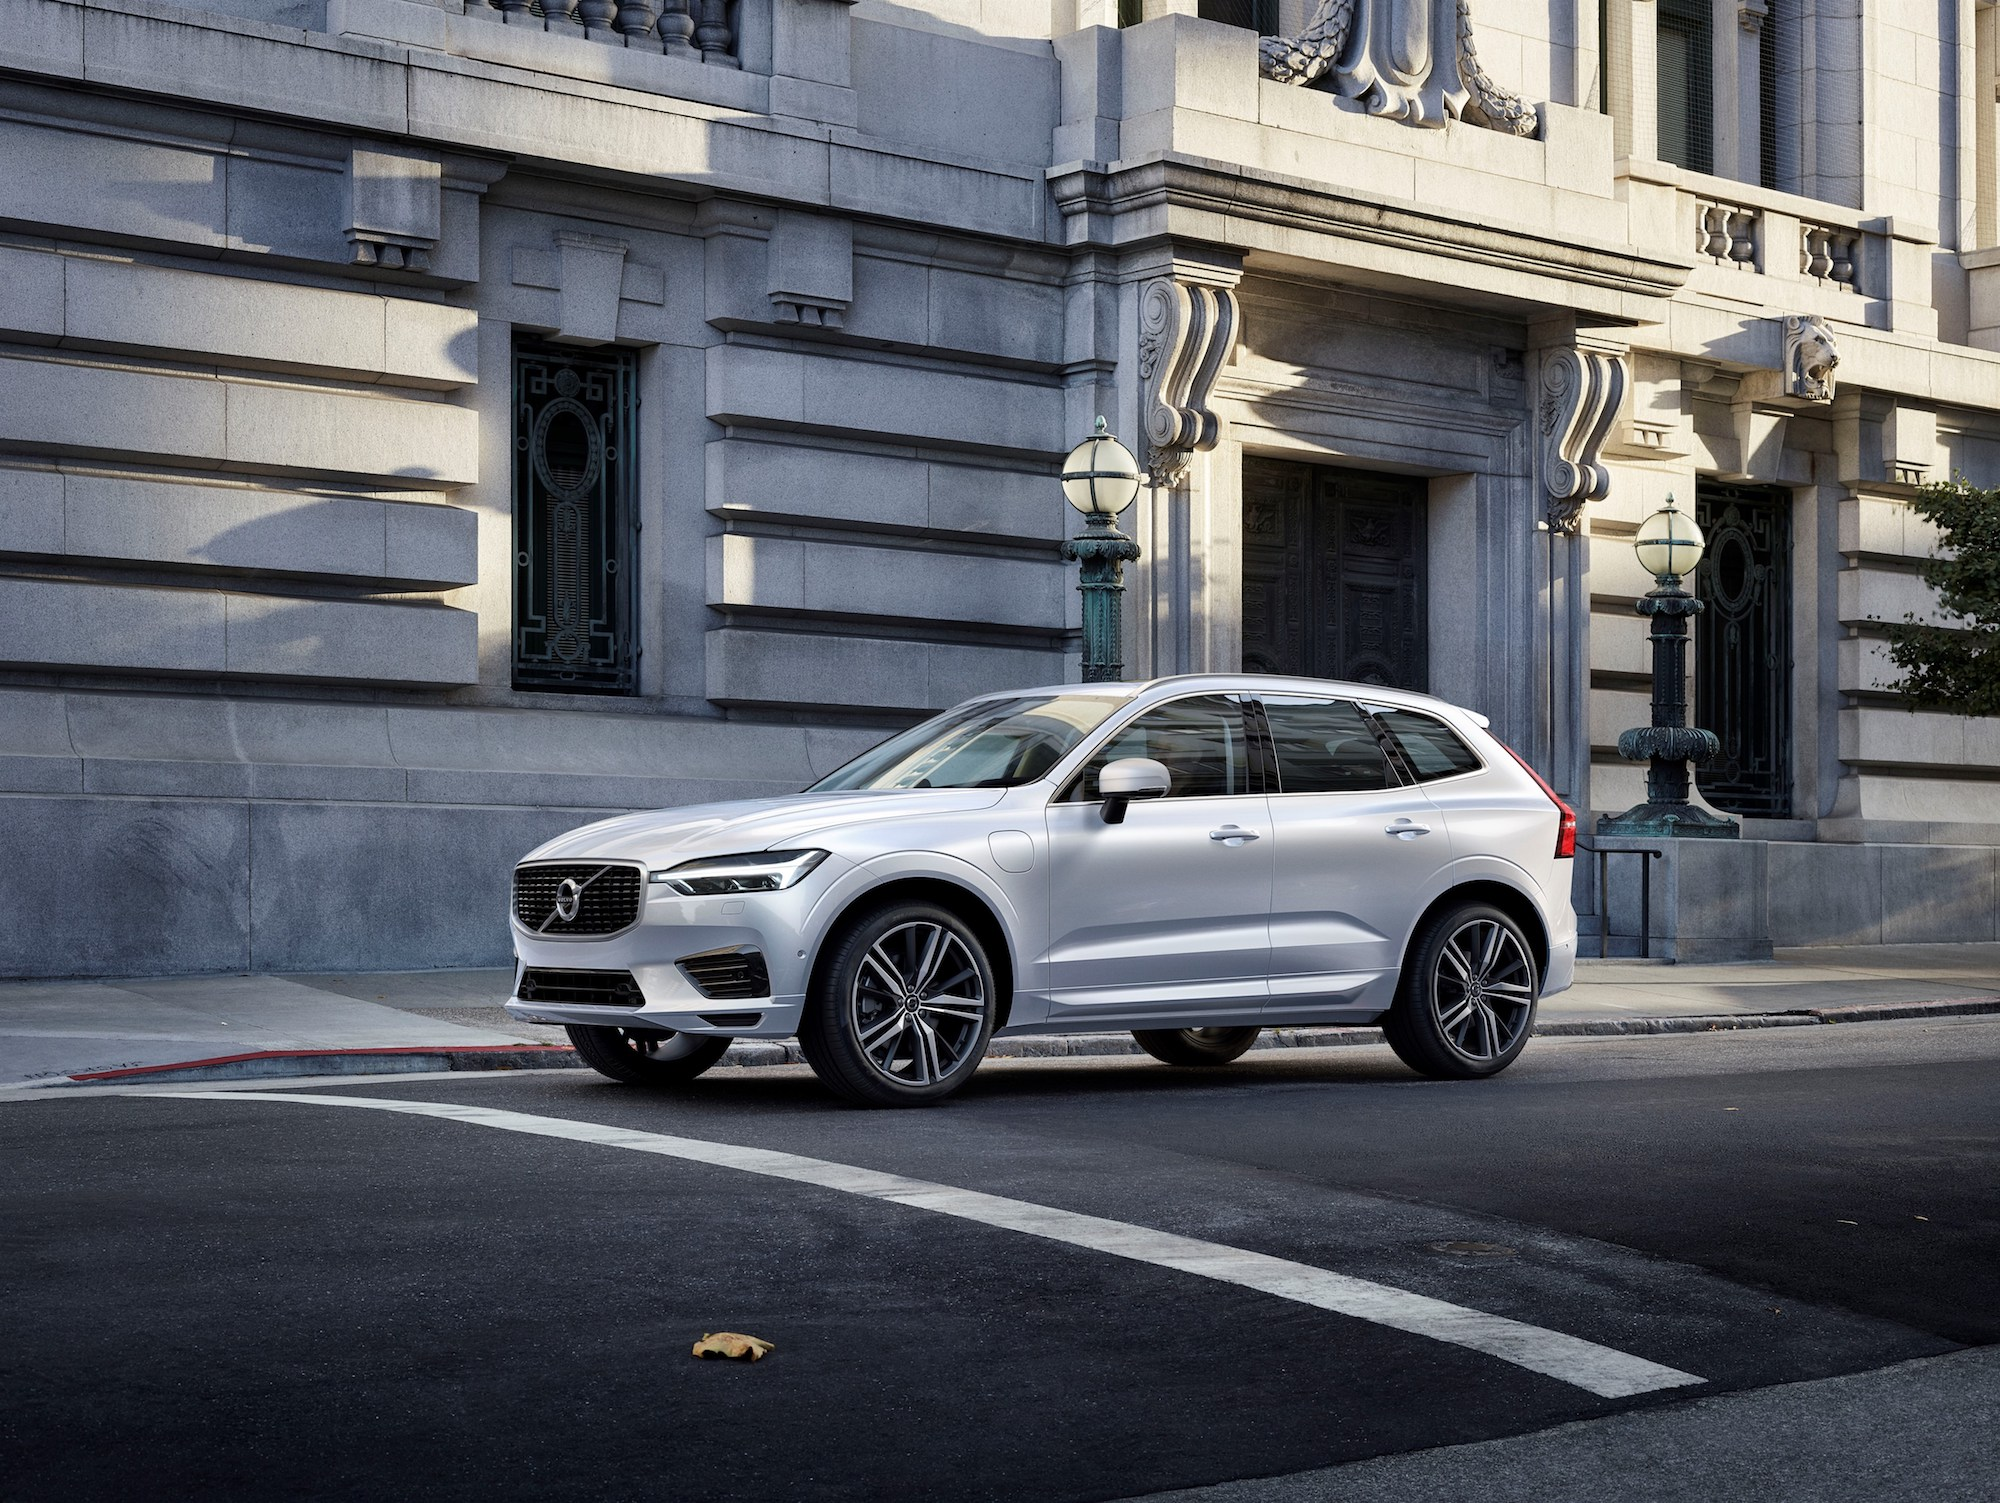 Volvo XC60 tops 2017 Euro NCAP tests